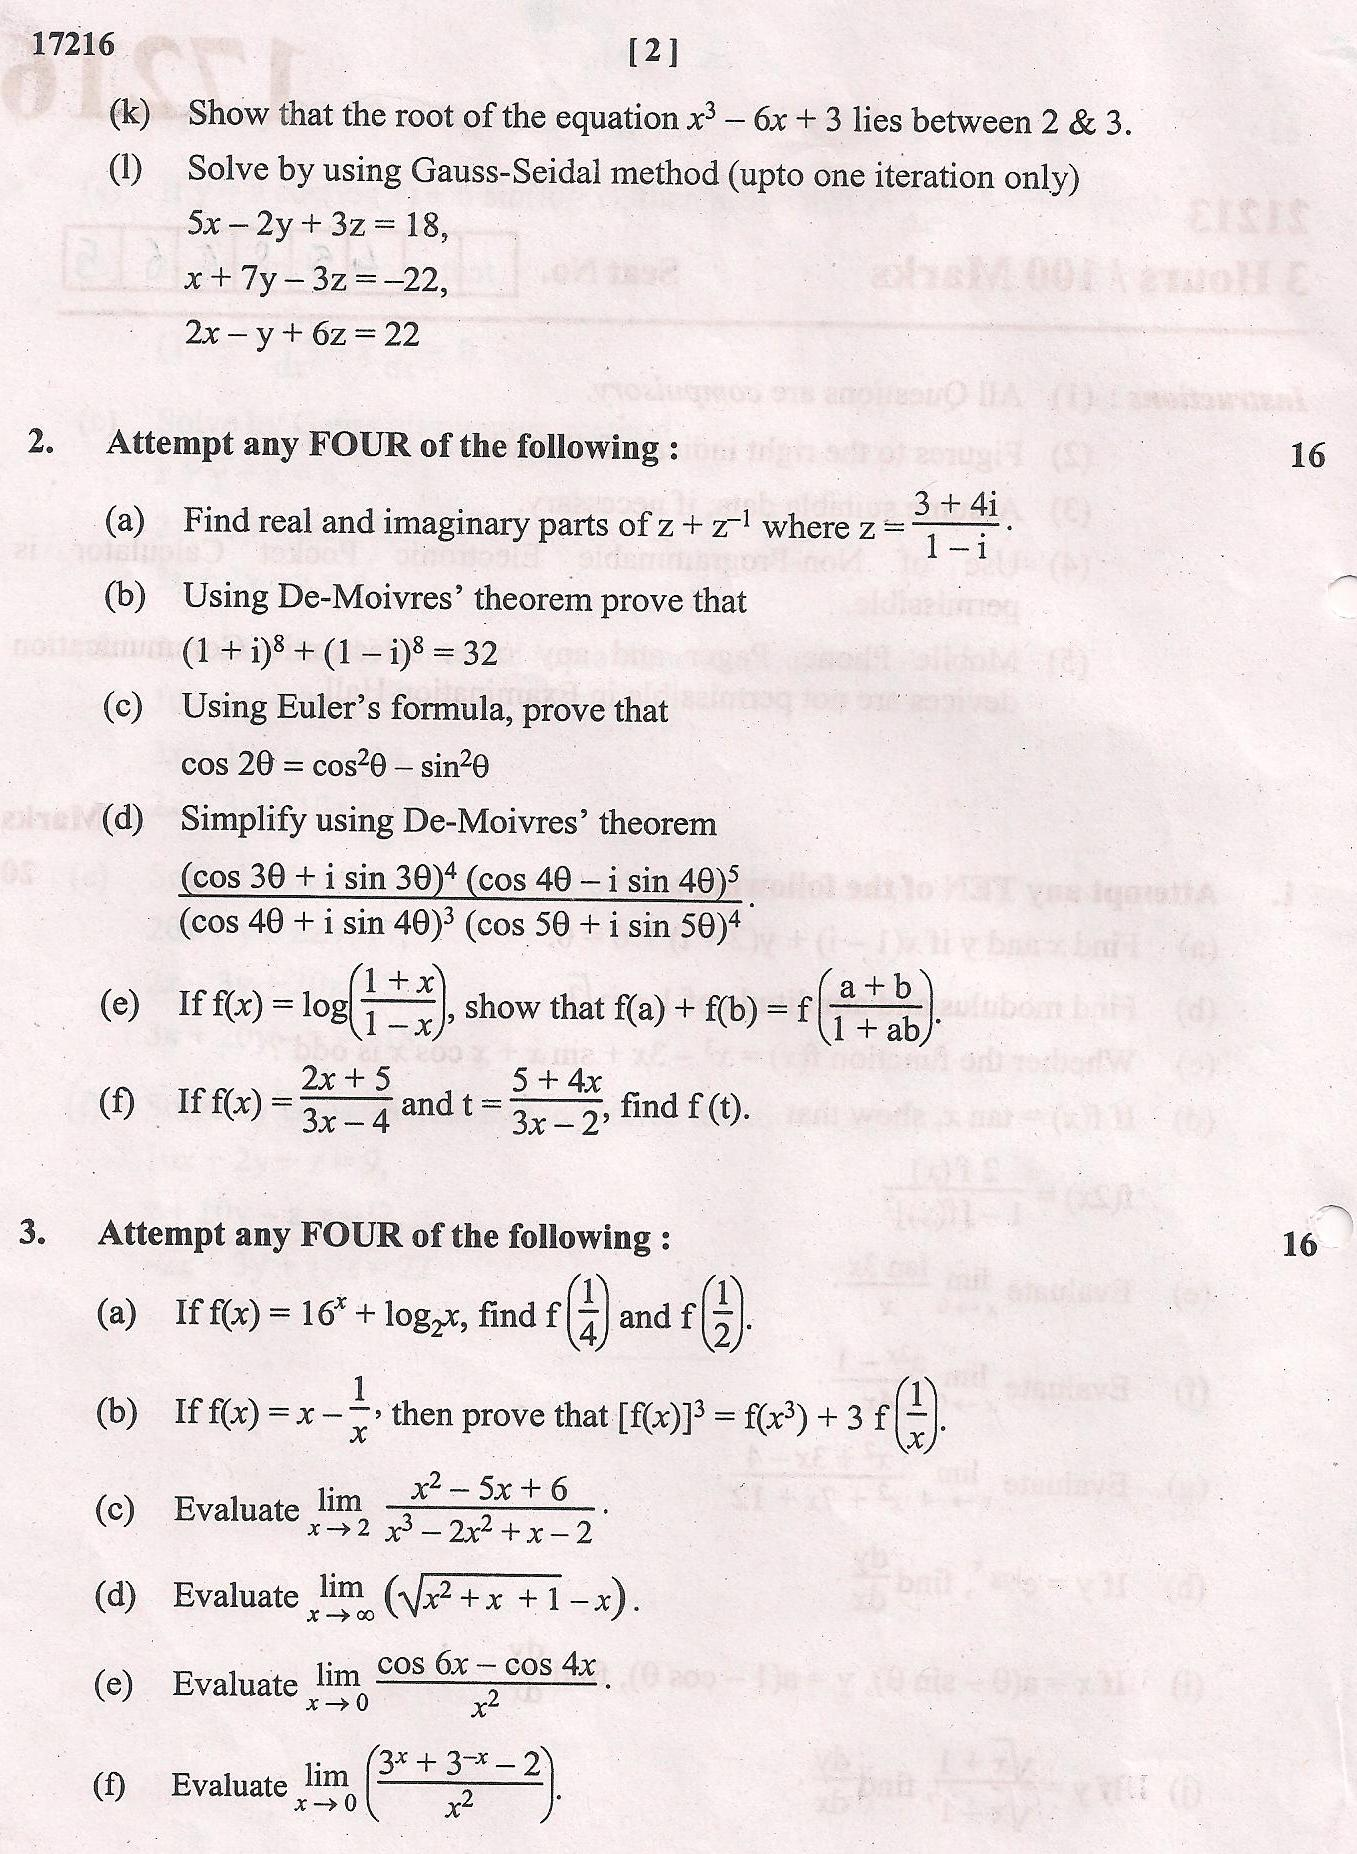 Maharashtra state board of technical education msbte question paper page 2 download malvernweather Choice Image